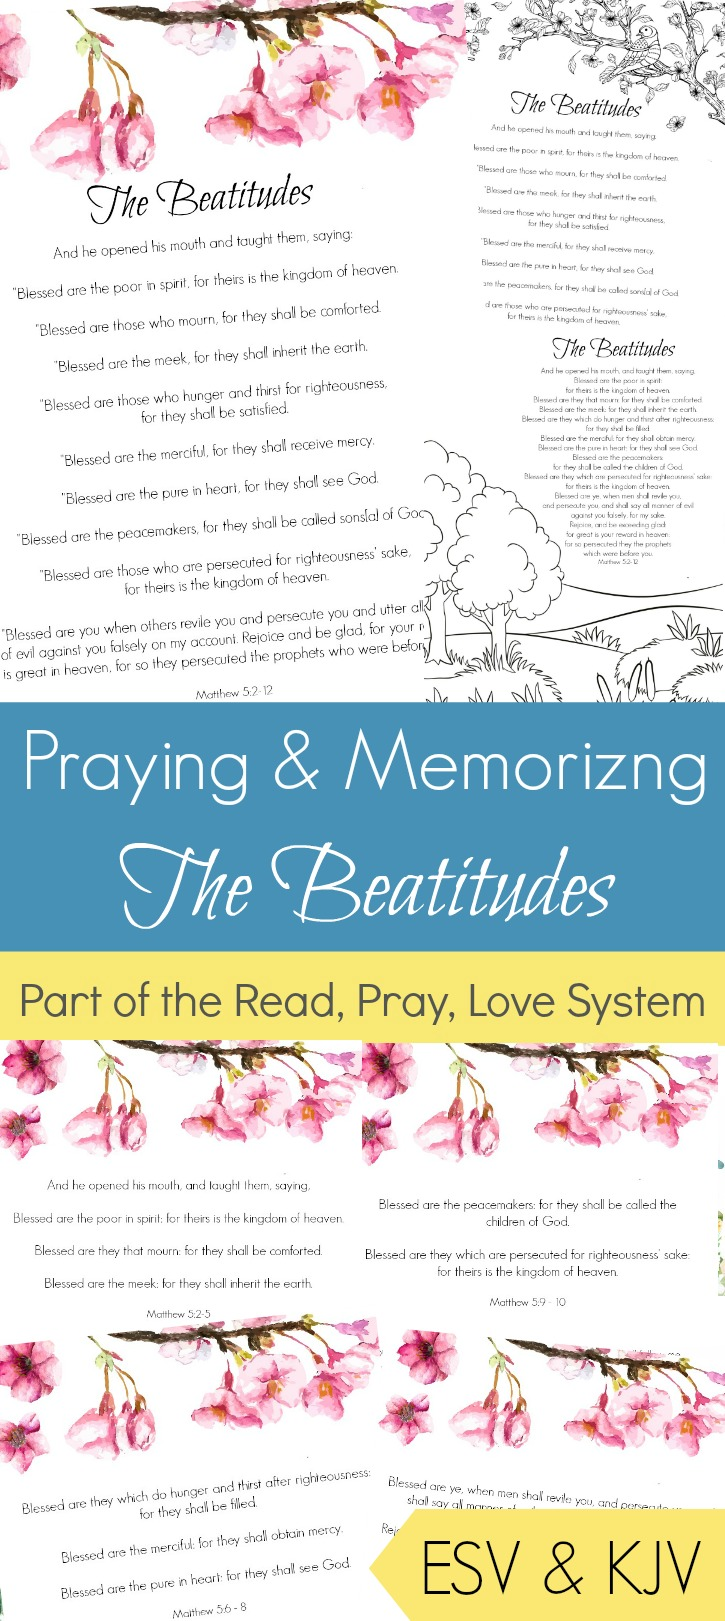 Pray and begin memorizing The Beatitudes together as a family! These beautiful scripture art prints, memory verse cards, coloring pages, and prayer prompts are a wonderful way to get started. Part of the Proverbial Homemaker Read, Pray, Love system.